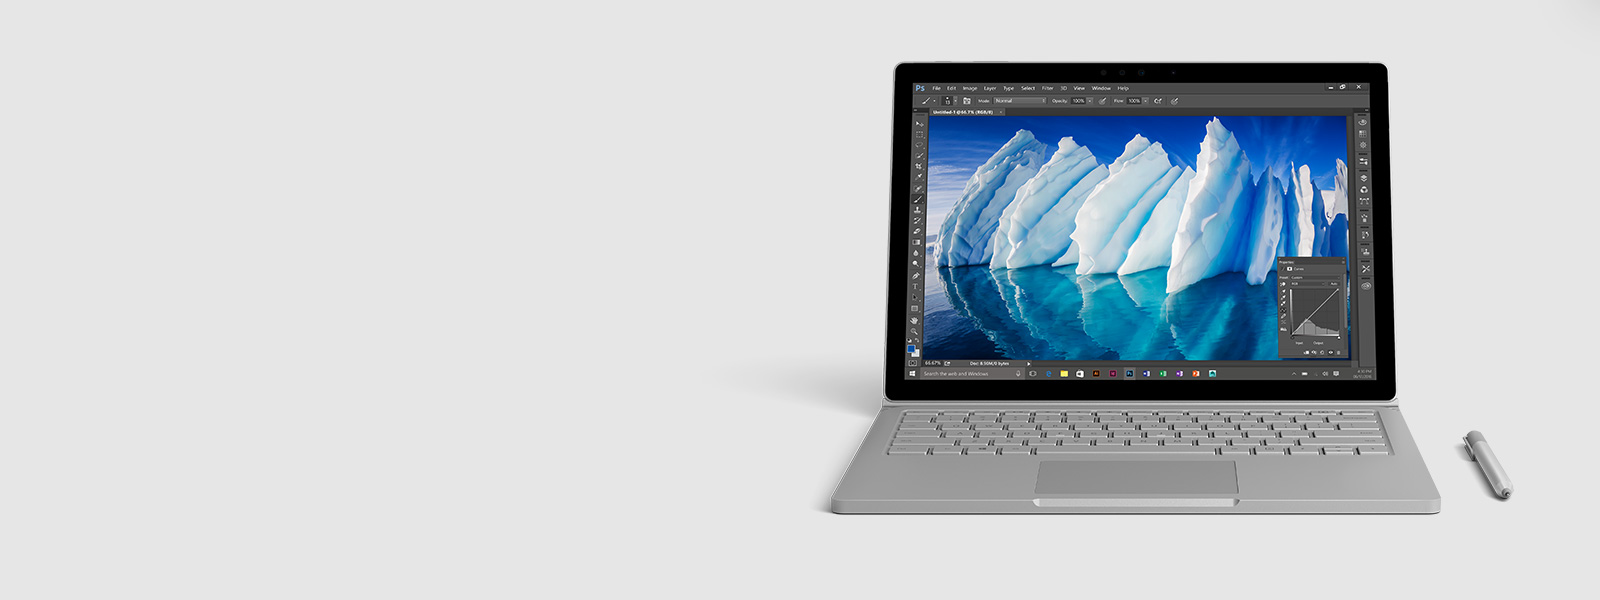 En Surface Book med Performance Base och en Surface-penna.